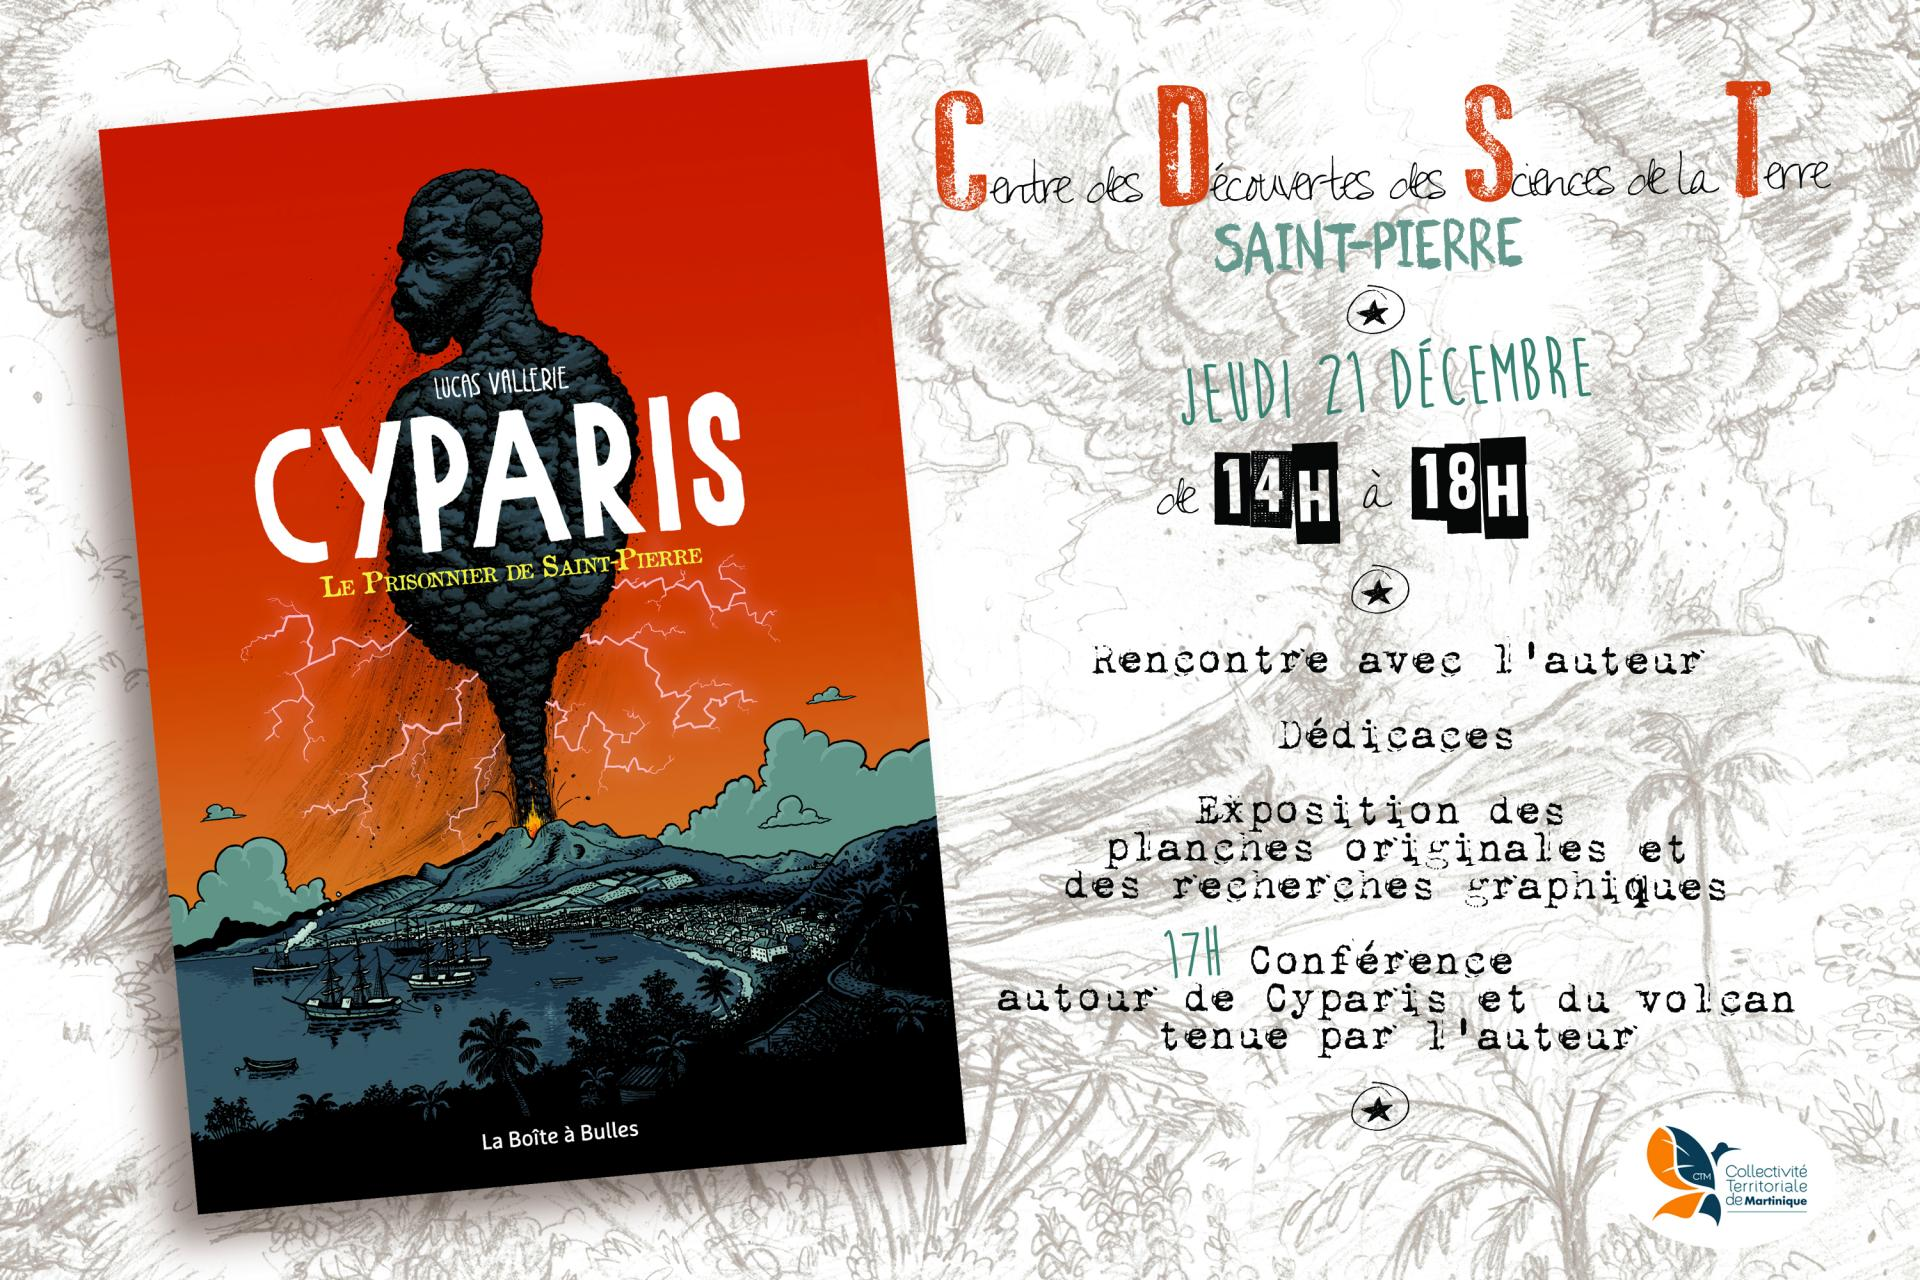 21dec cyparis rencontre